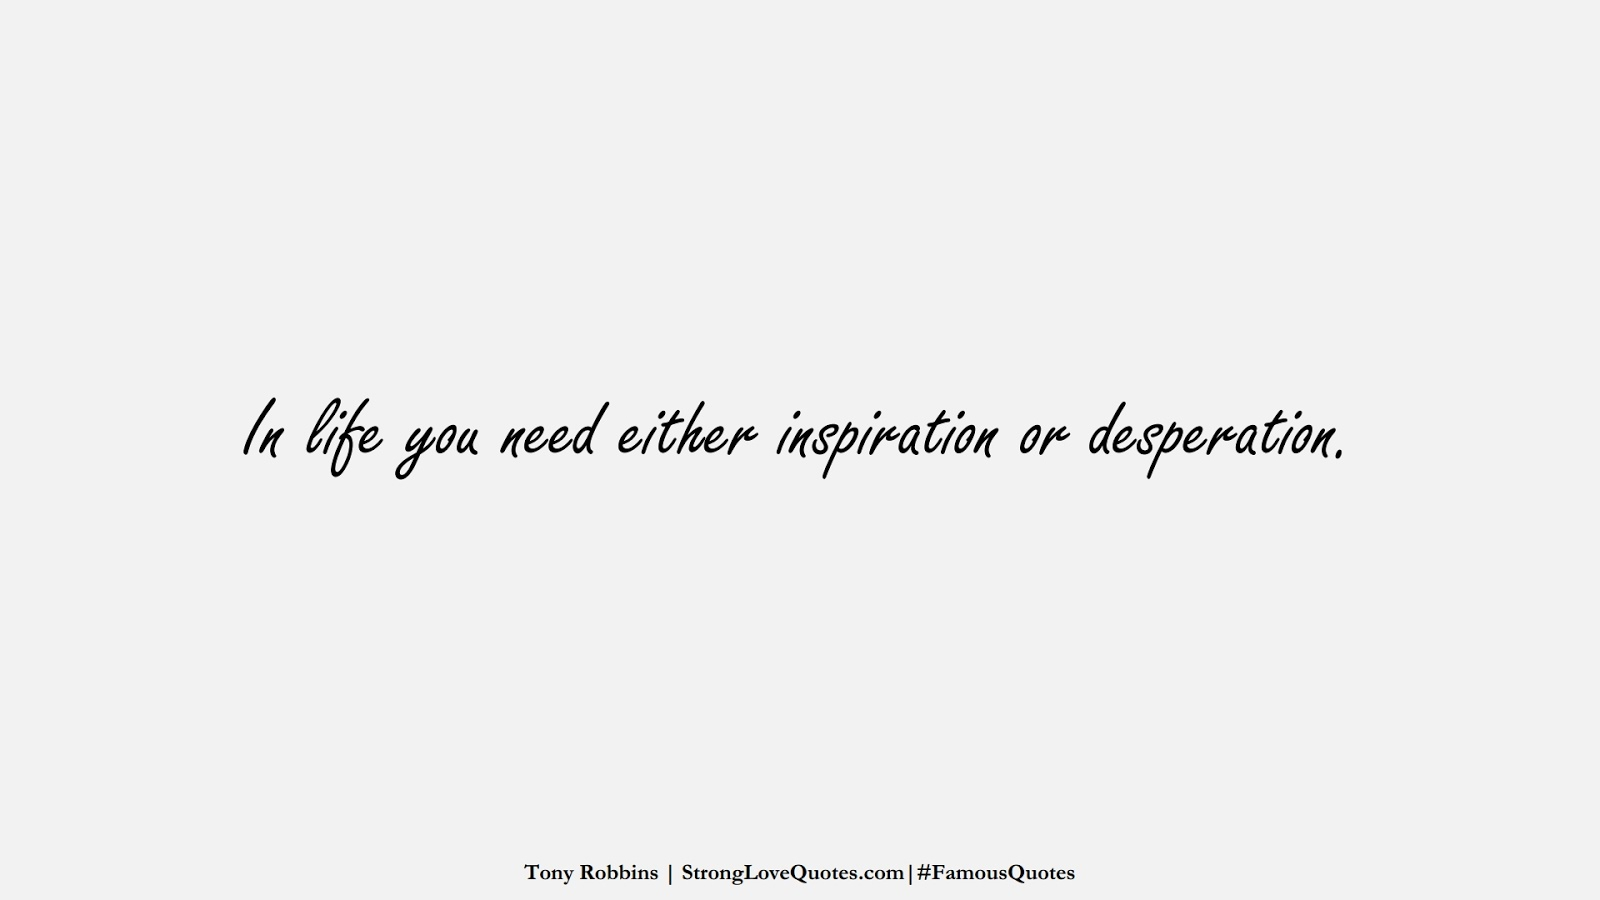 In life you need either inspiration or desperation. (Tony Robbins);  #FamousQuotes